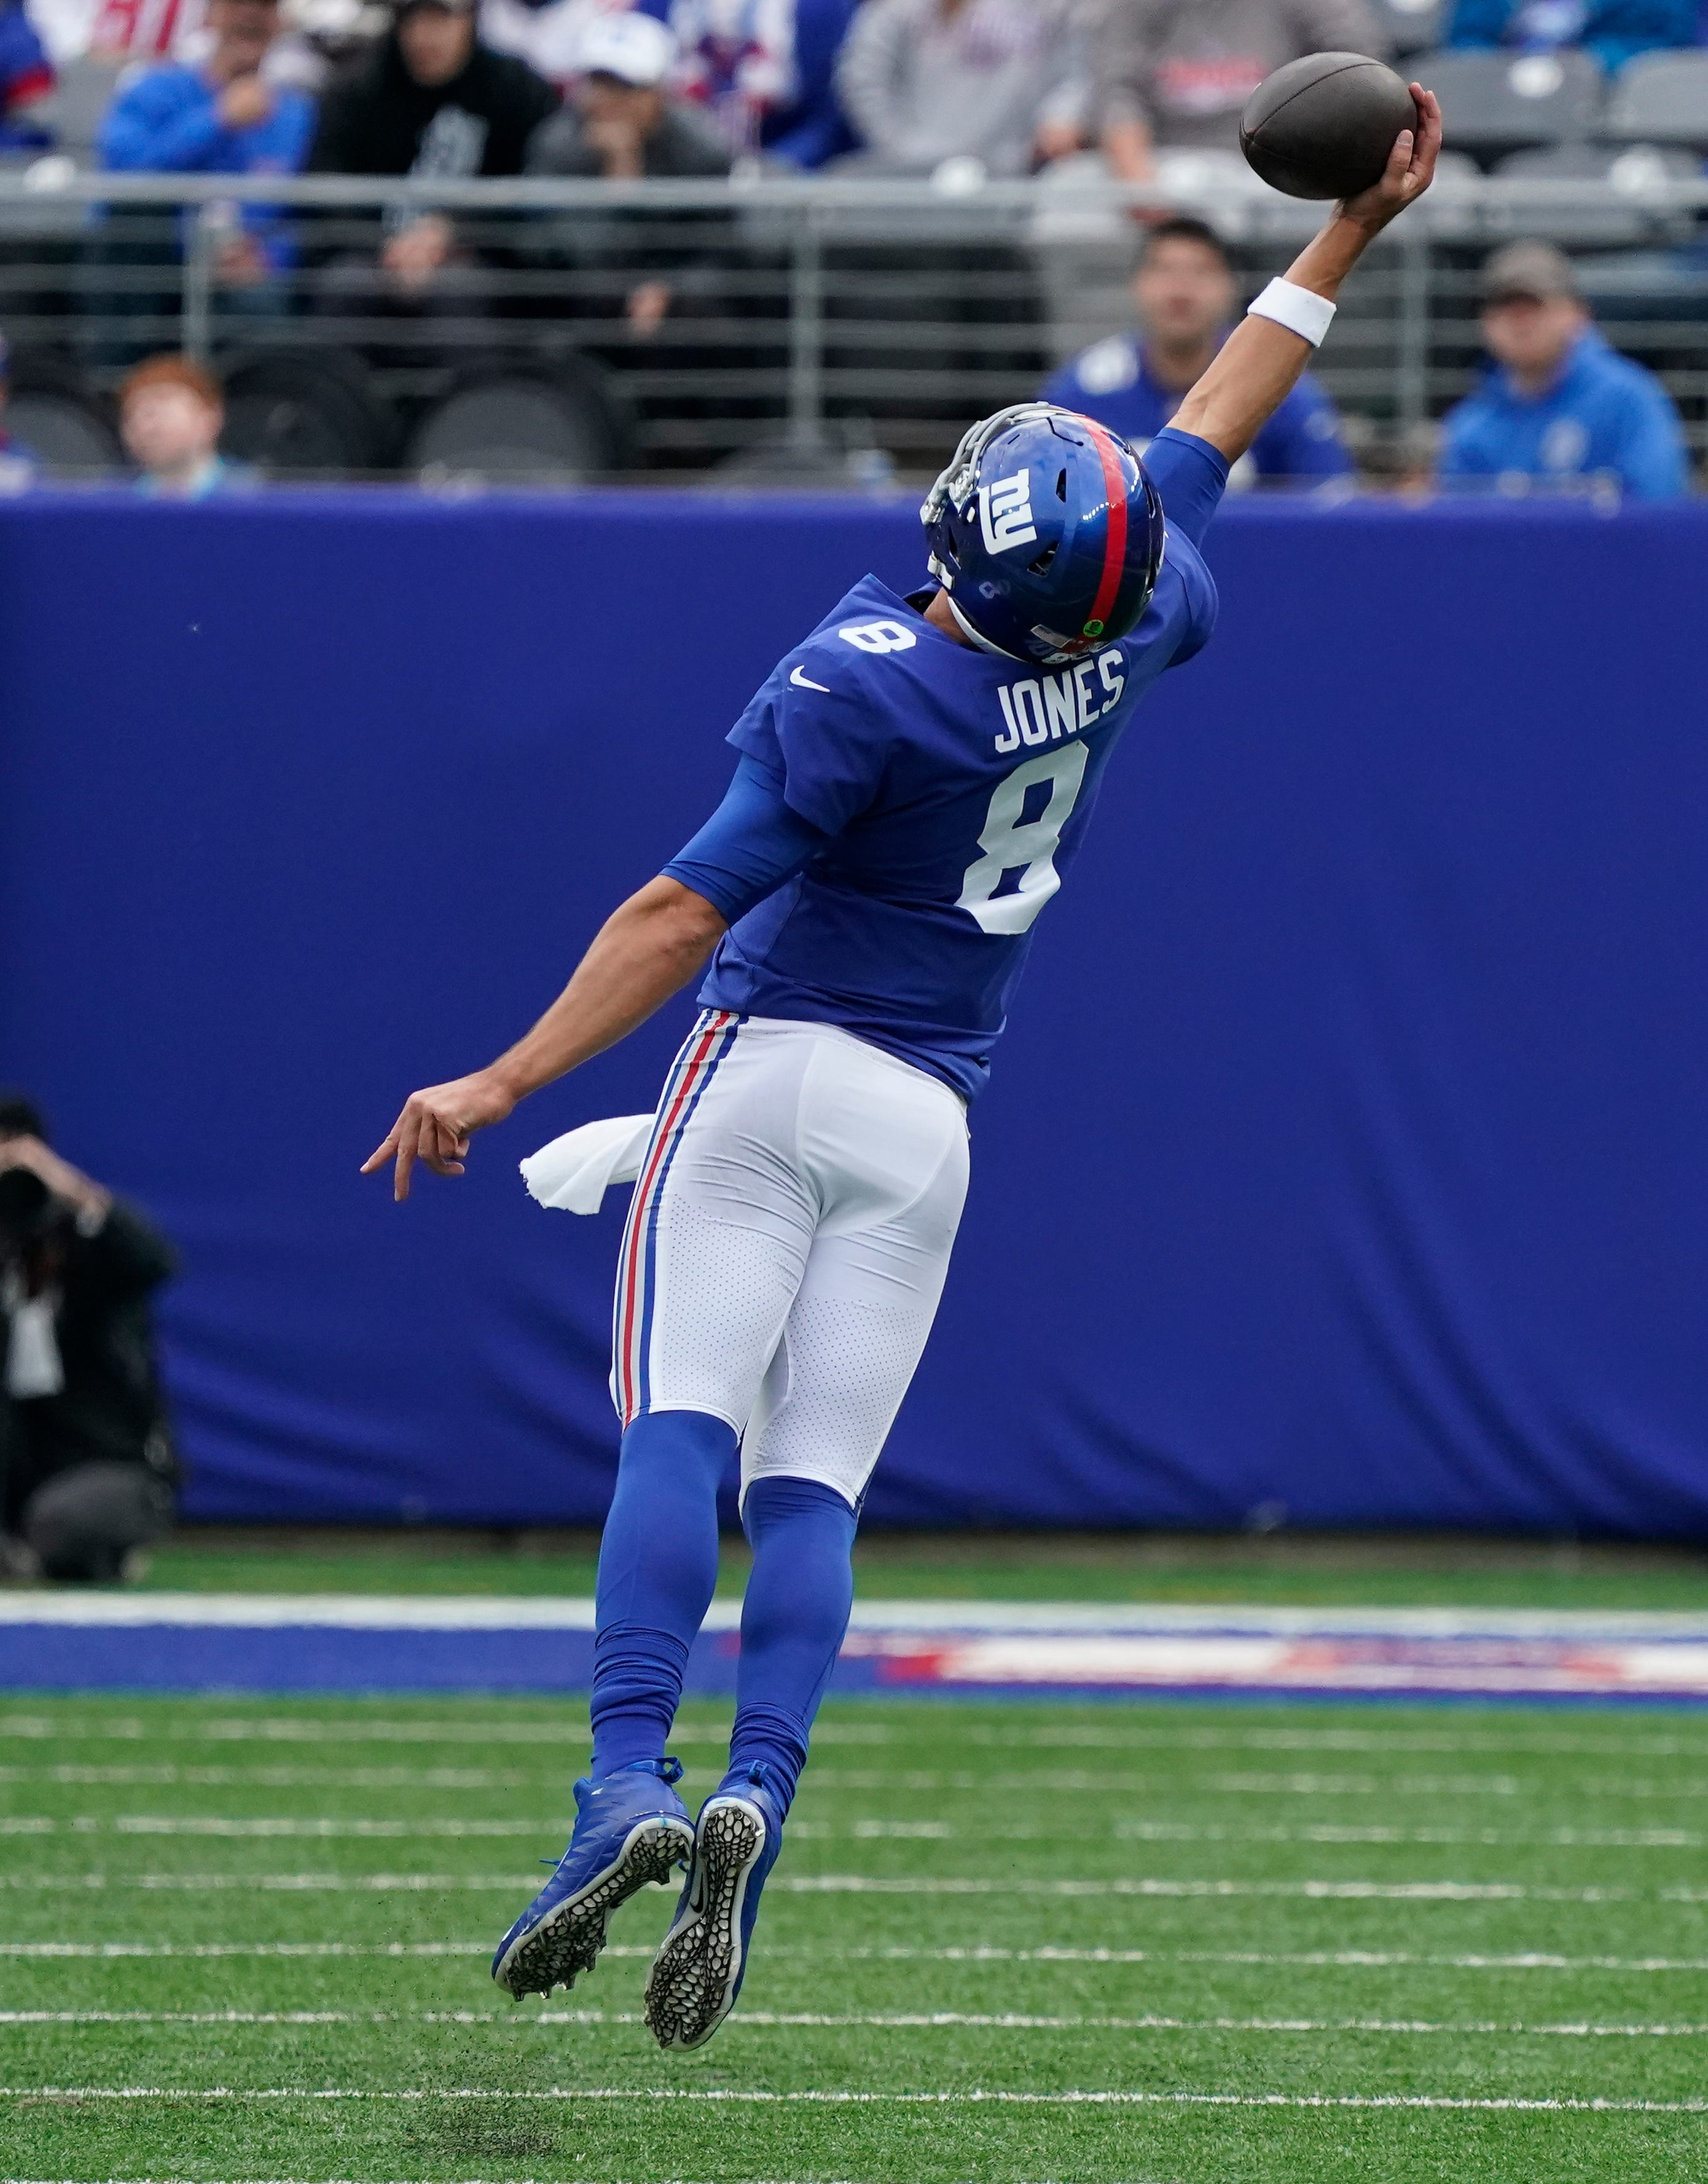 NY Giants QB Daniel Jones wows with incredible one-handed catch, delivers in all facets